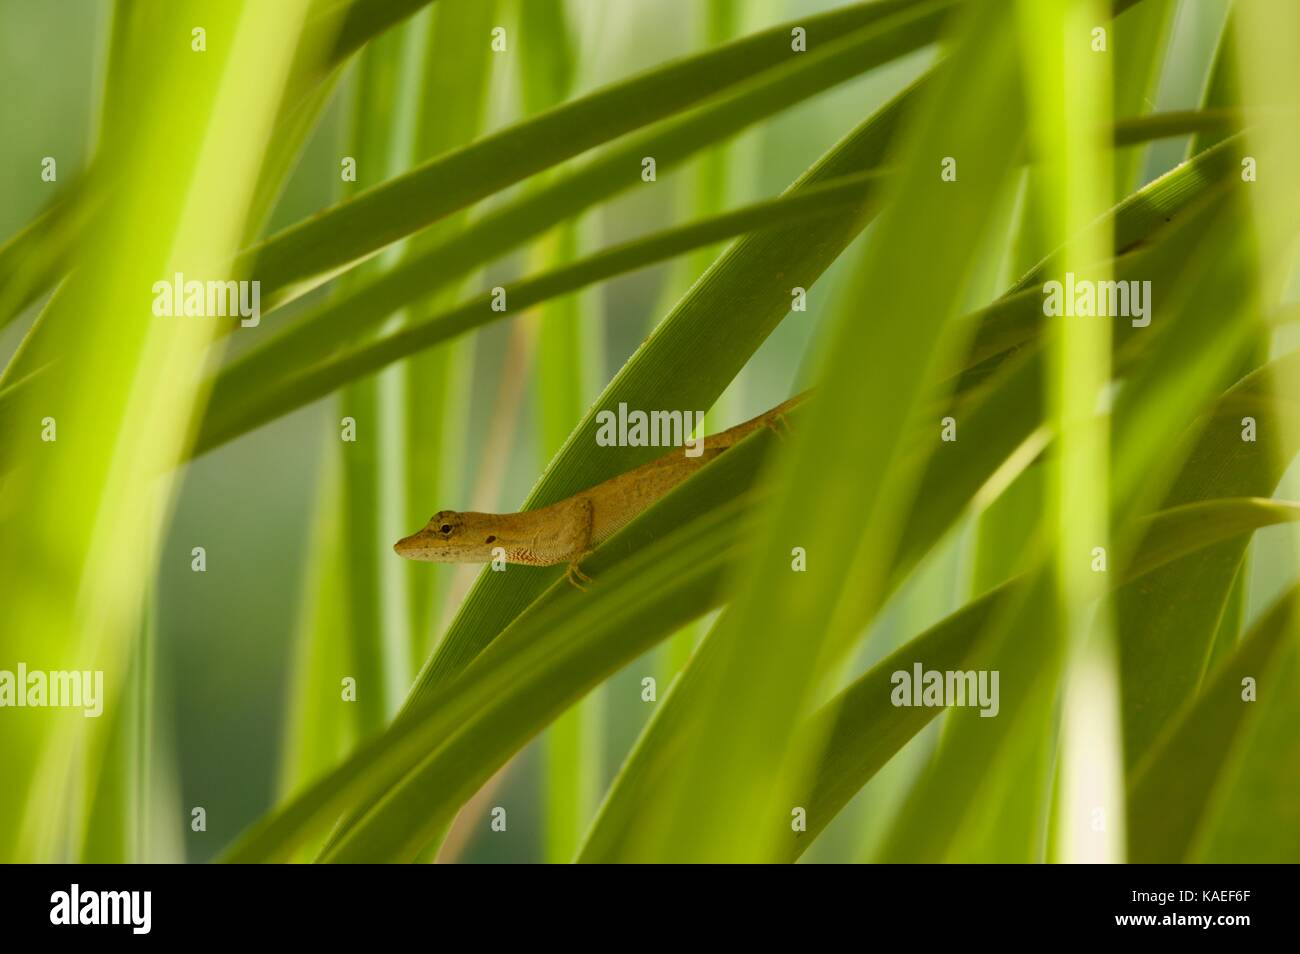 A Clouded Anole (Anolis nebulosus) perched in vegetation in Alamos, Sonora, Mexico - Stock Image